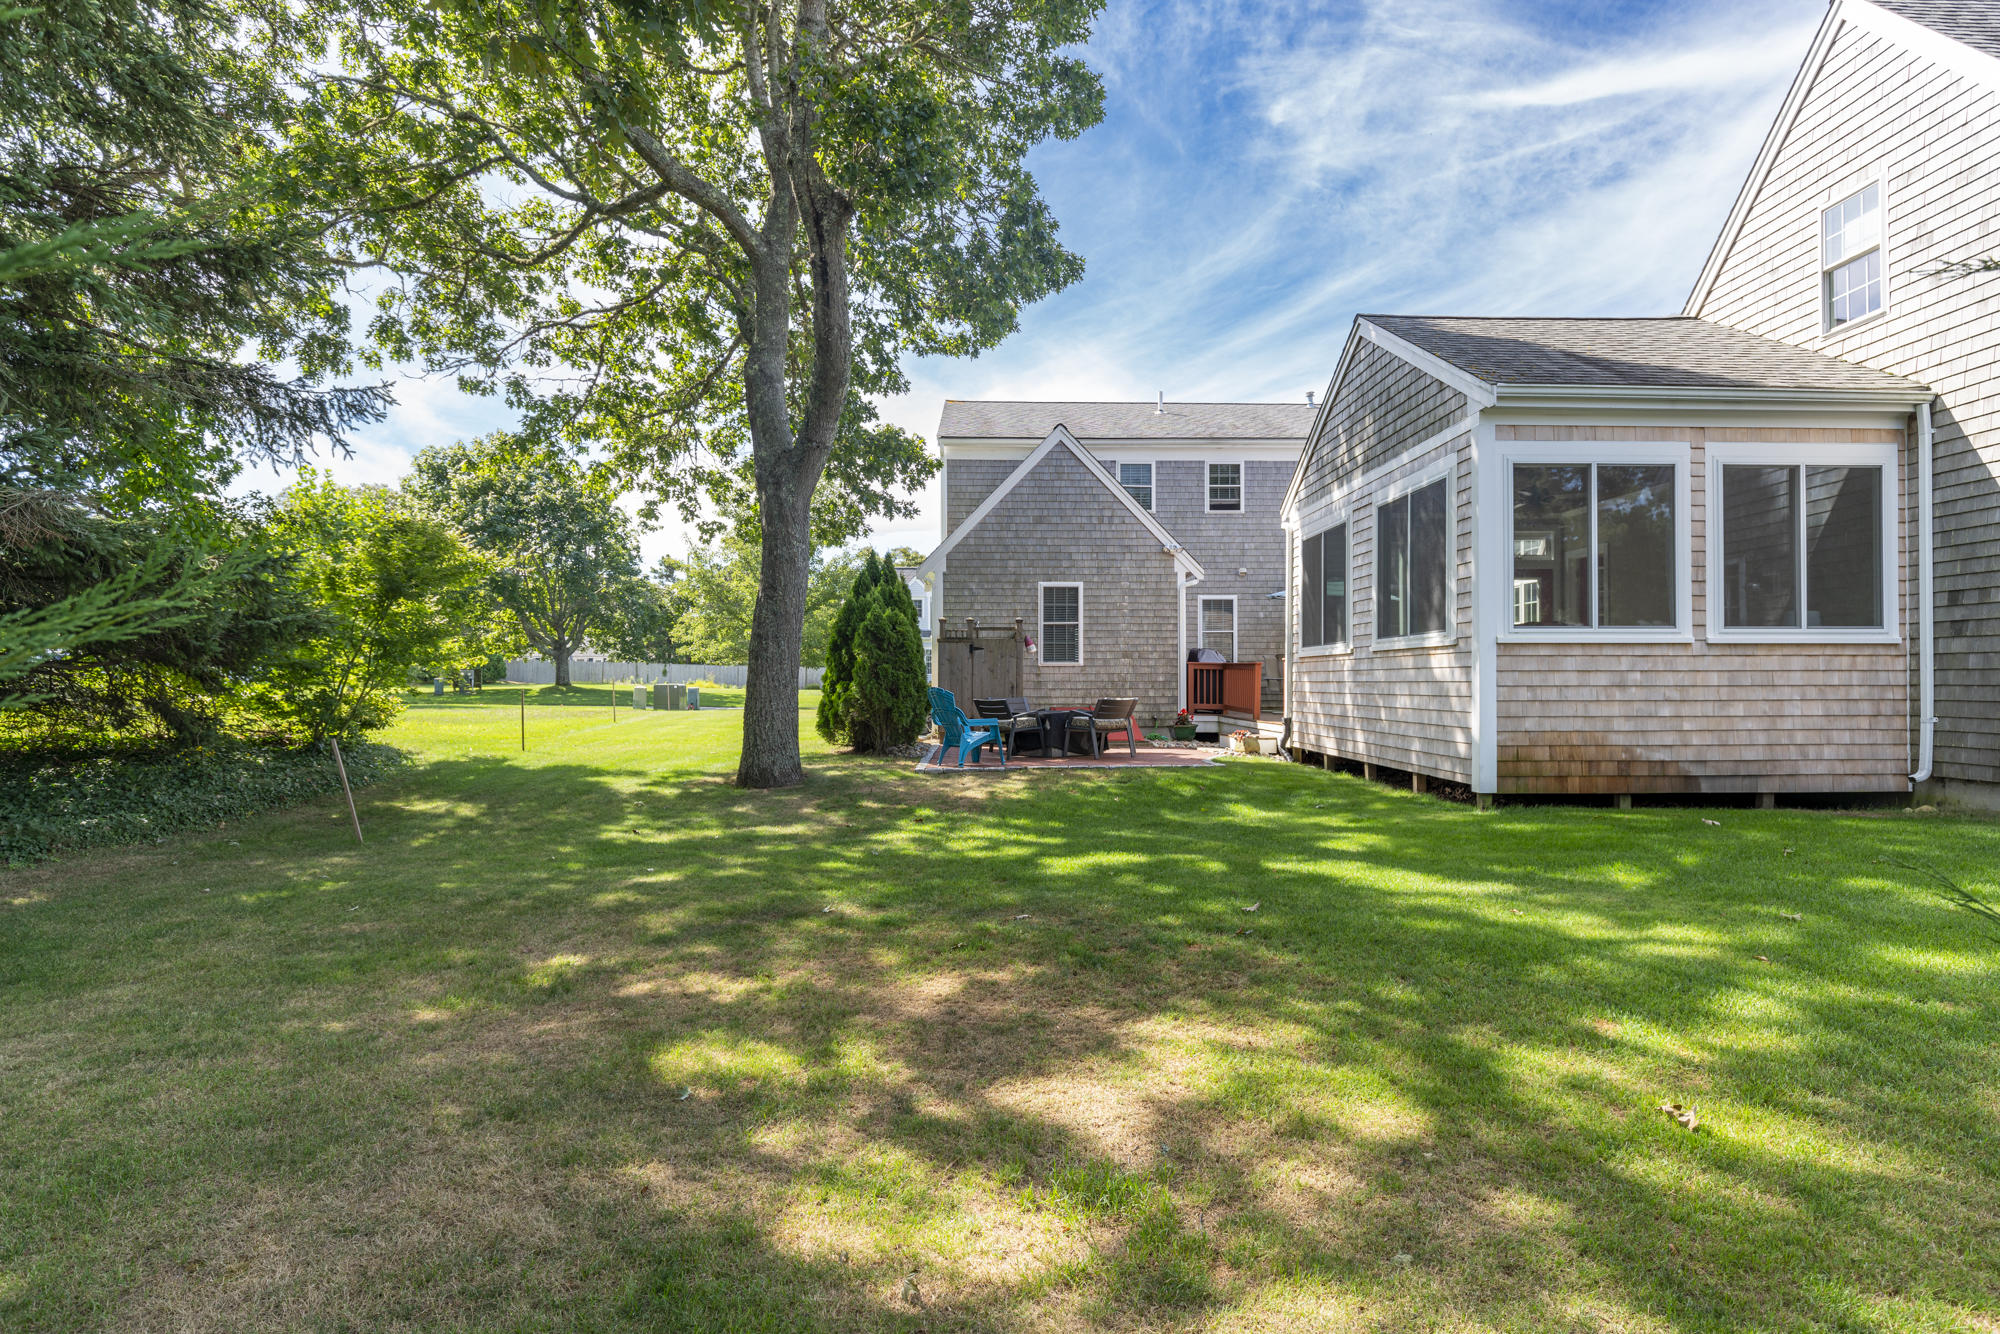 3 Nellies Way, Chatham, MA  02633 - slide 6